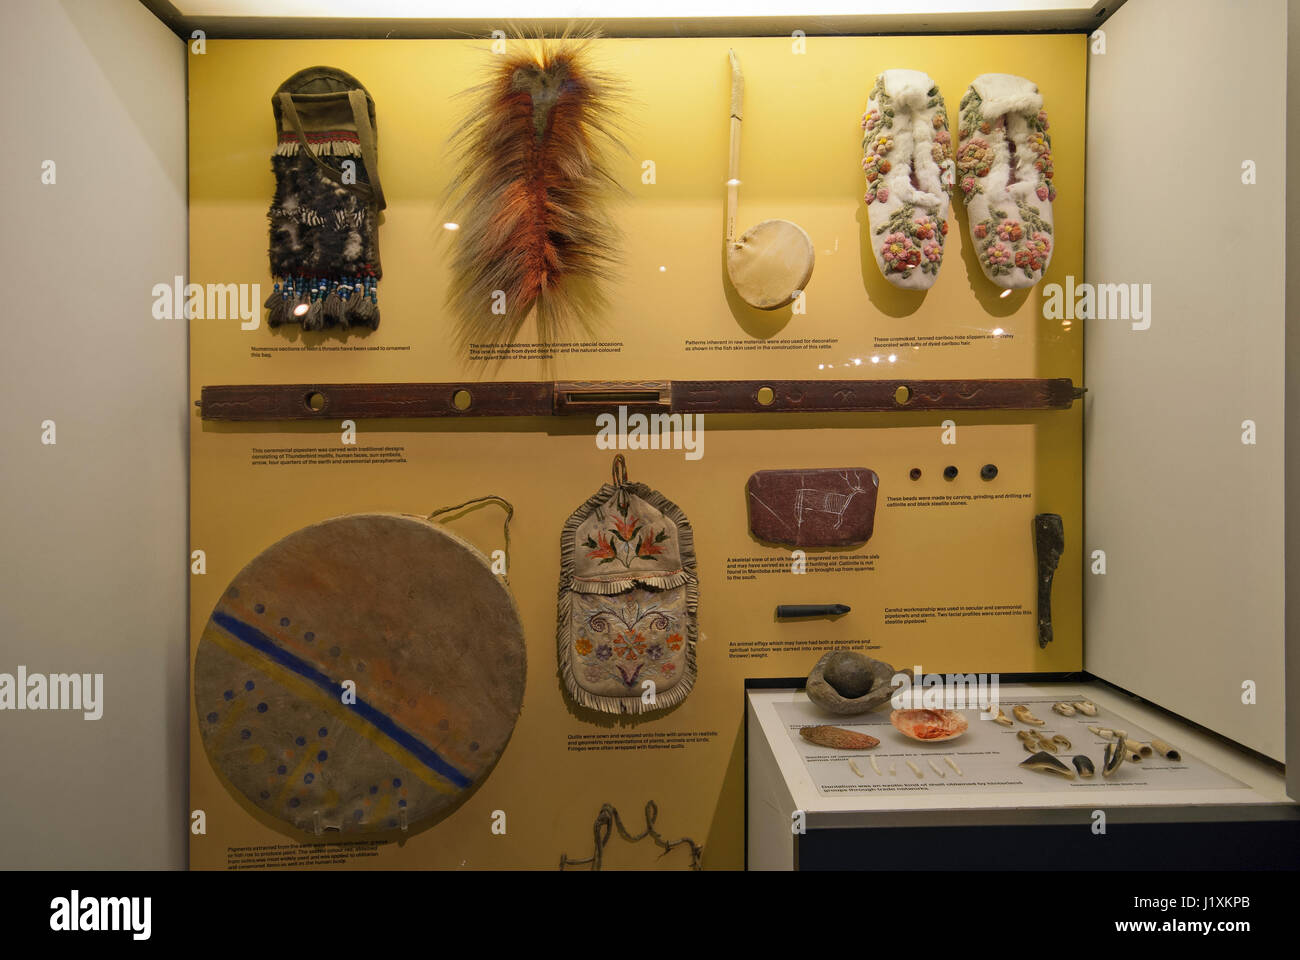 Exhibit about objects and tools of Natives, Manitoba Museum, Winnipeg, Manitoba, Canada - Stock Image